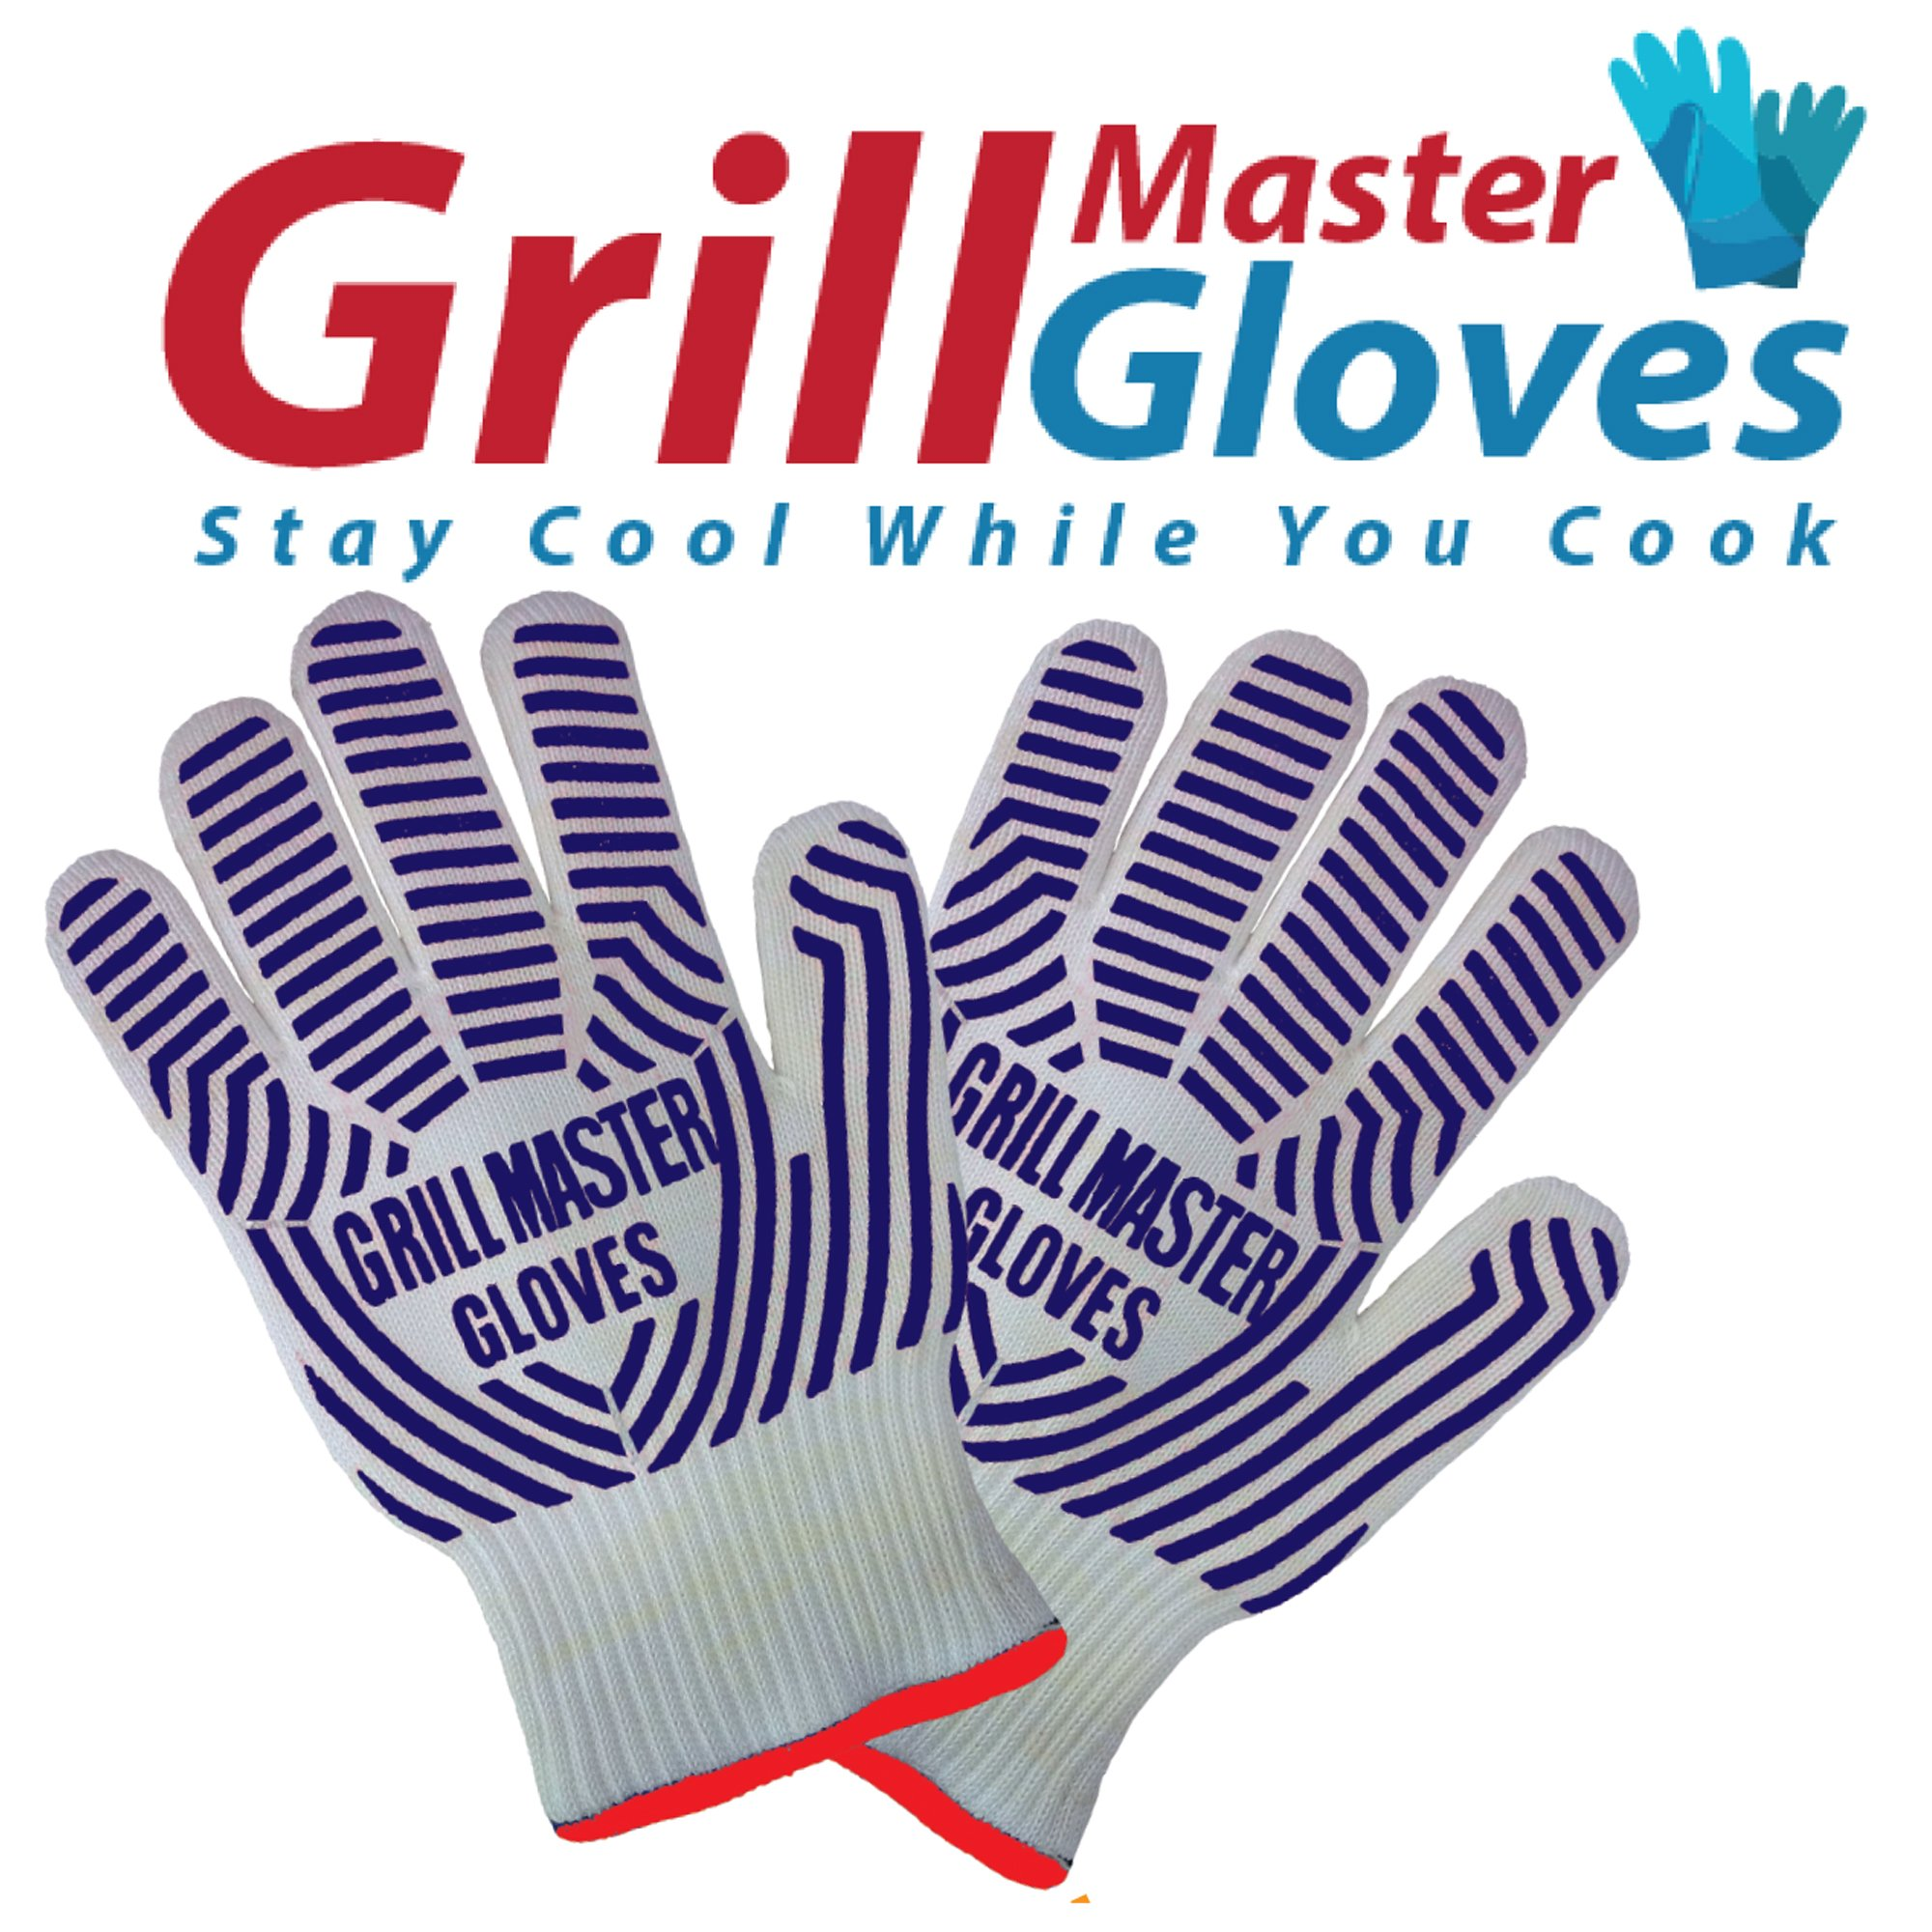 Grill Gloves Heat Resistant Extreme BBQ Gloves Oven Gloves Rated to 932f - Ideal Grilling Gloves by Grill Master (Black) by Grill Master Gloves (Image #4)